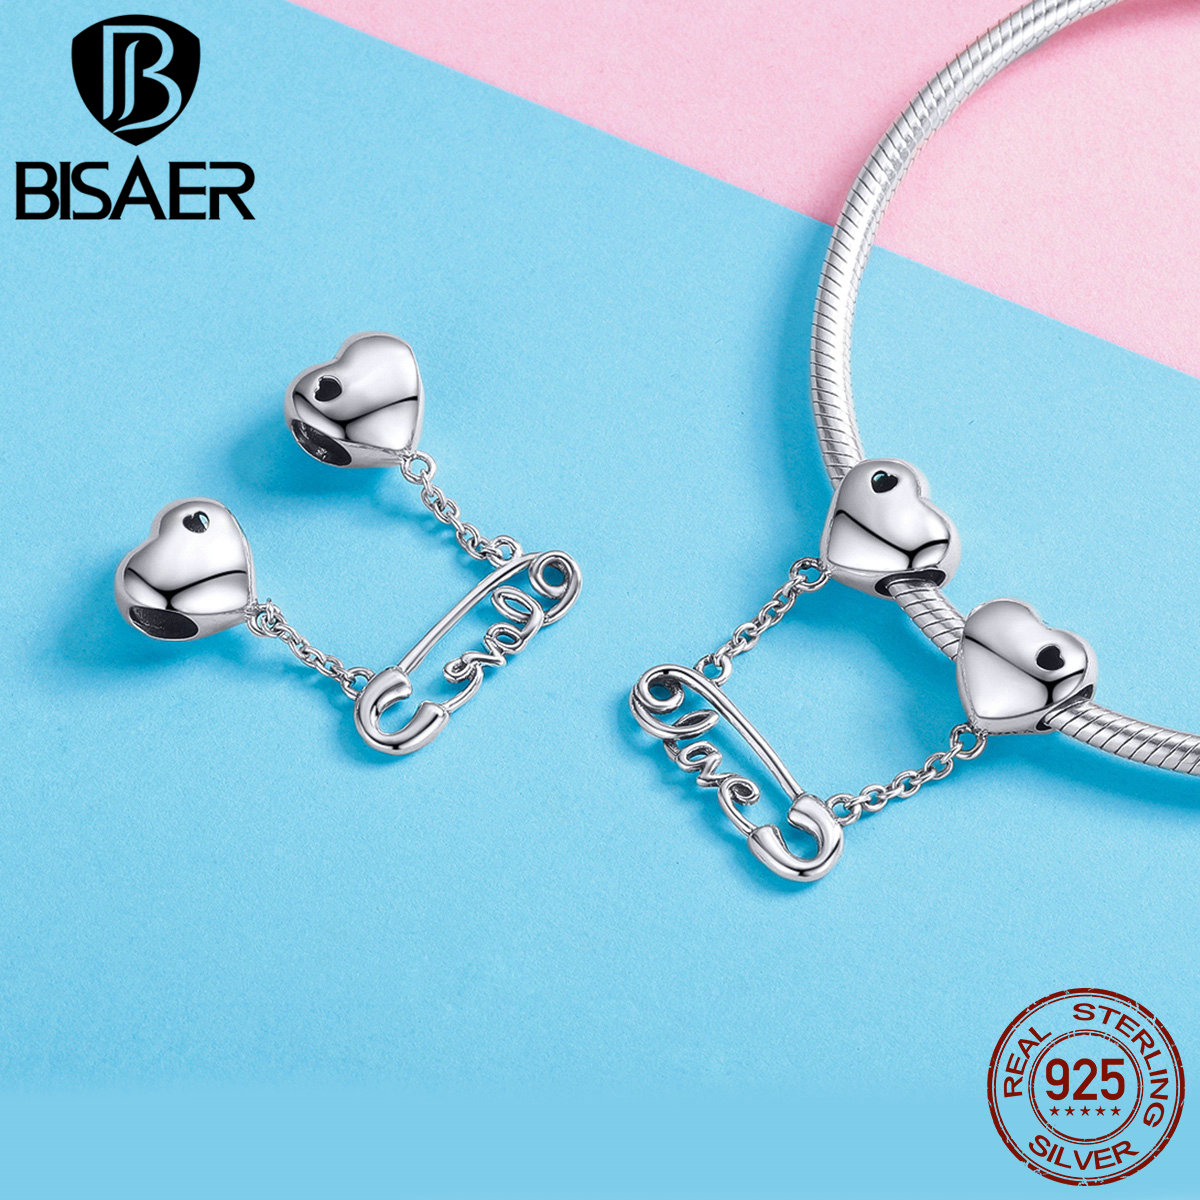 Bisaer Authentic Fantasy 925 Pendant Charms Bead Jewelry For Women Fit Bracelets